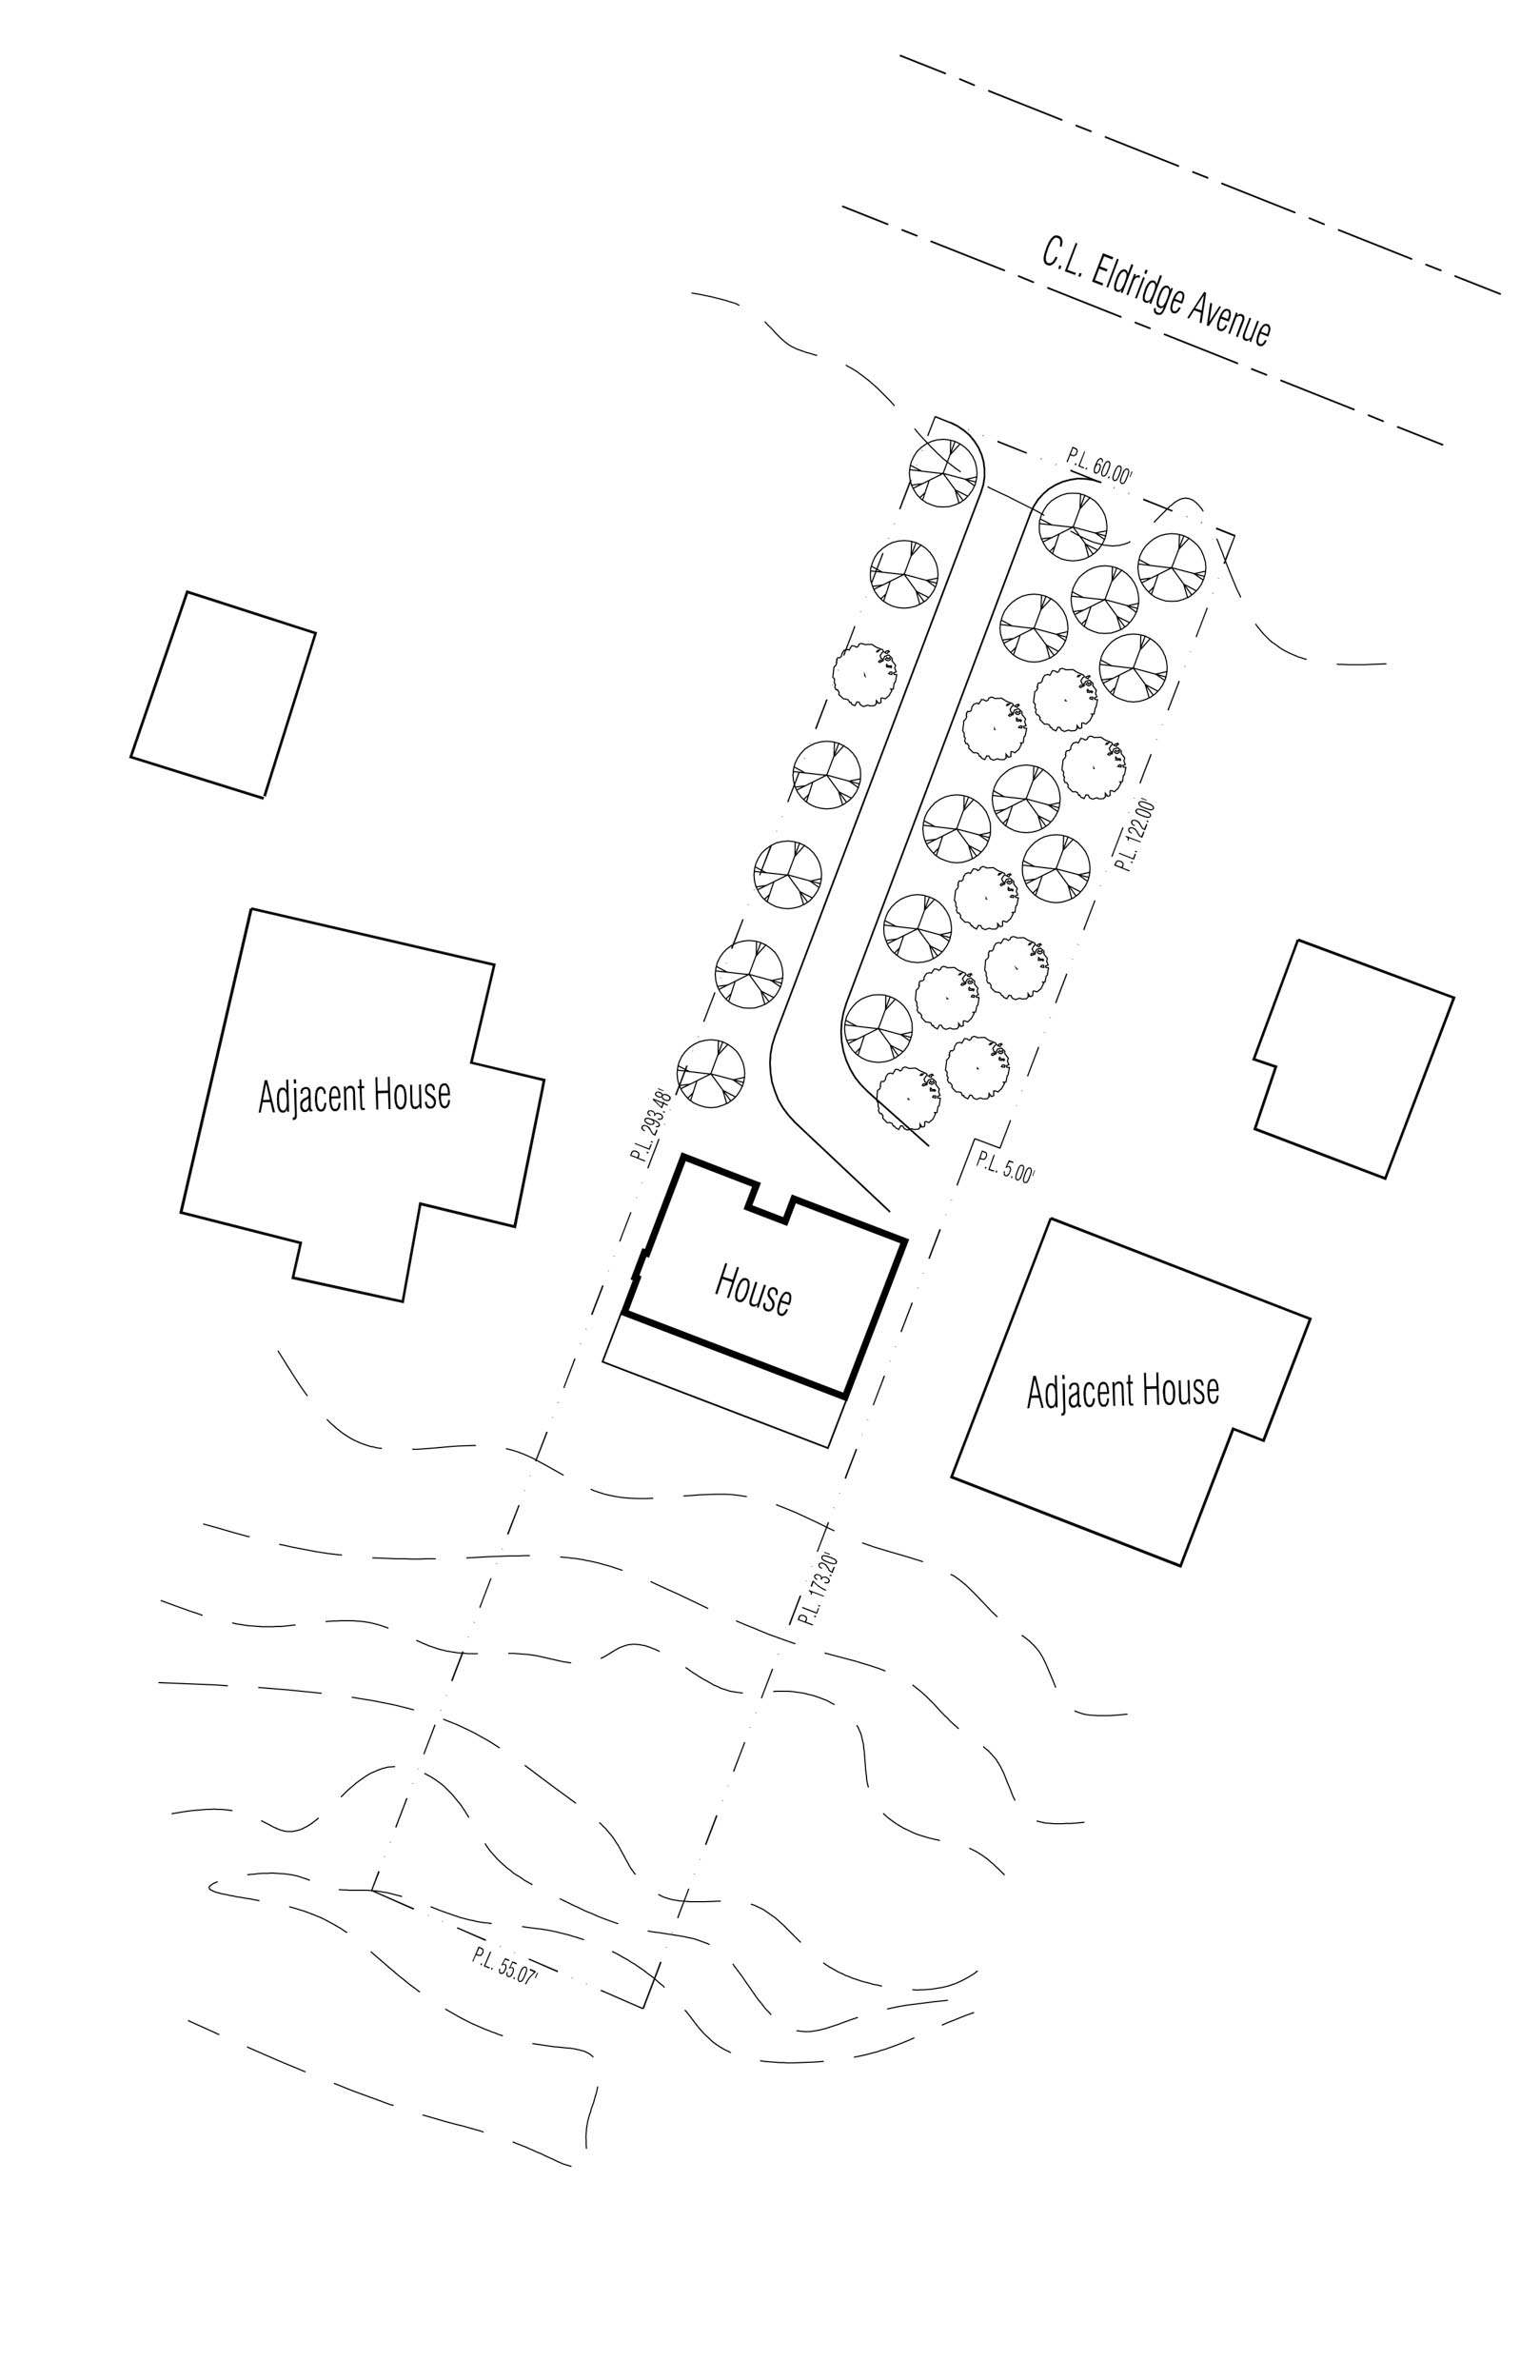 The site plan shows the location of the proposed house relative to the property boundaries and adjacent homes.